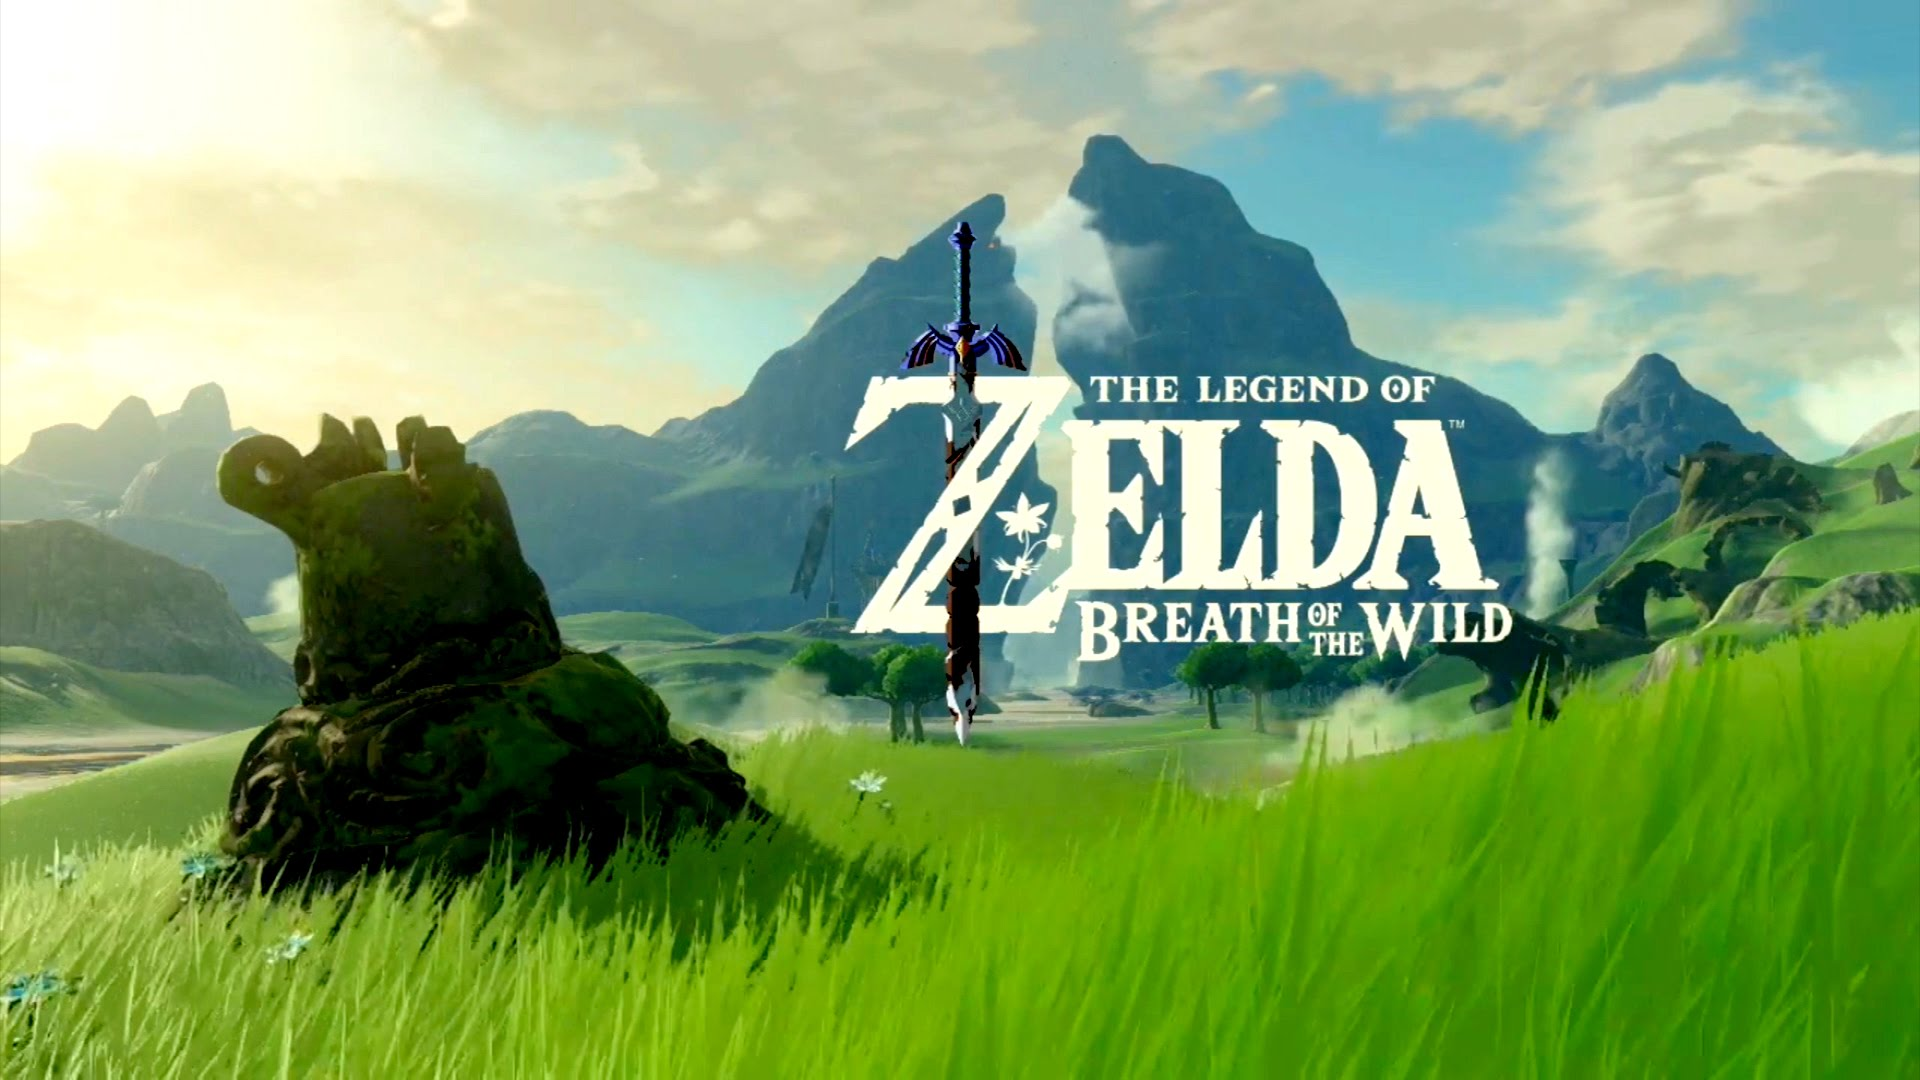 The Legend Of Zelda Breath Of The Wild Wallpapers Video Game Hq